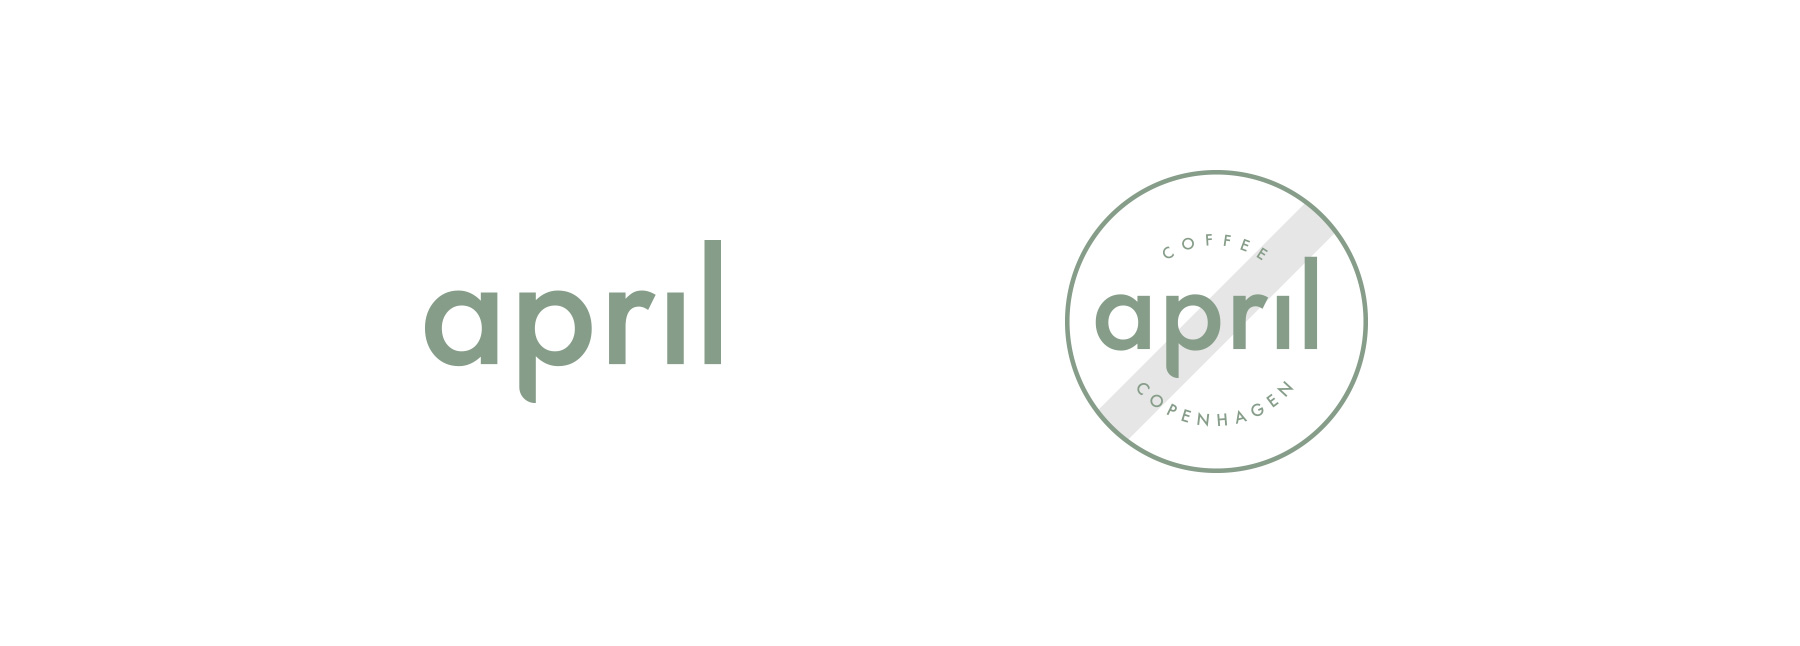 april-coffee-roasters-copenhagen-design-by-max-duchardt-m-a-a-x-branding-logo-green